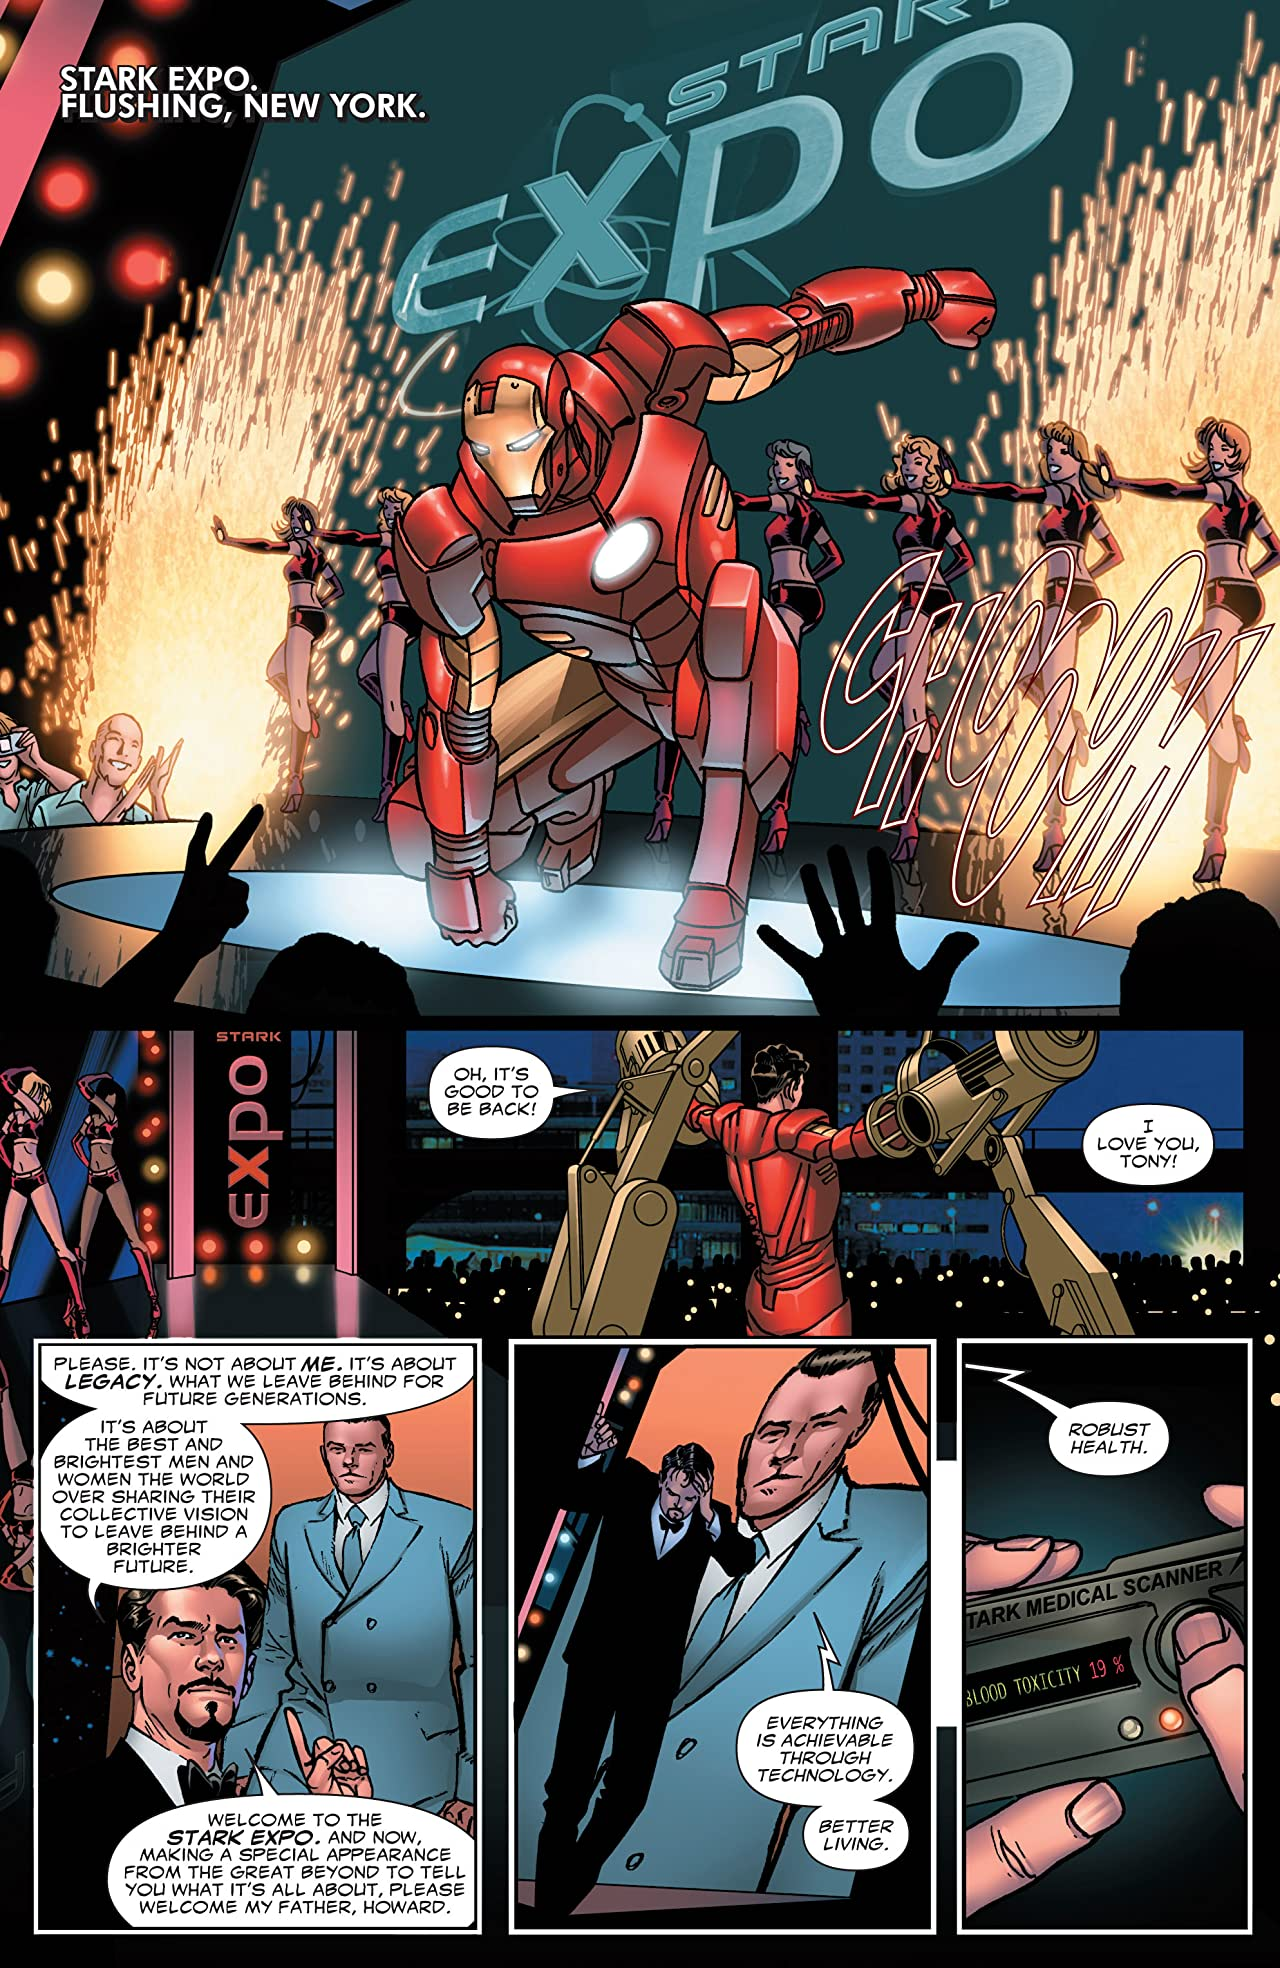 Marvel's Iron Man 2 Adaptation #1 (of 2)